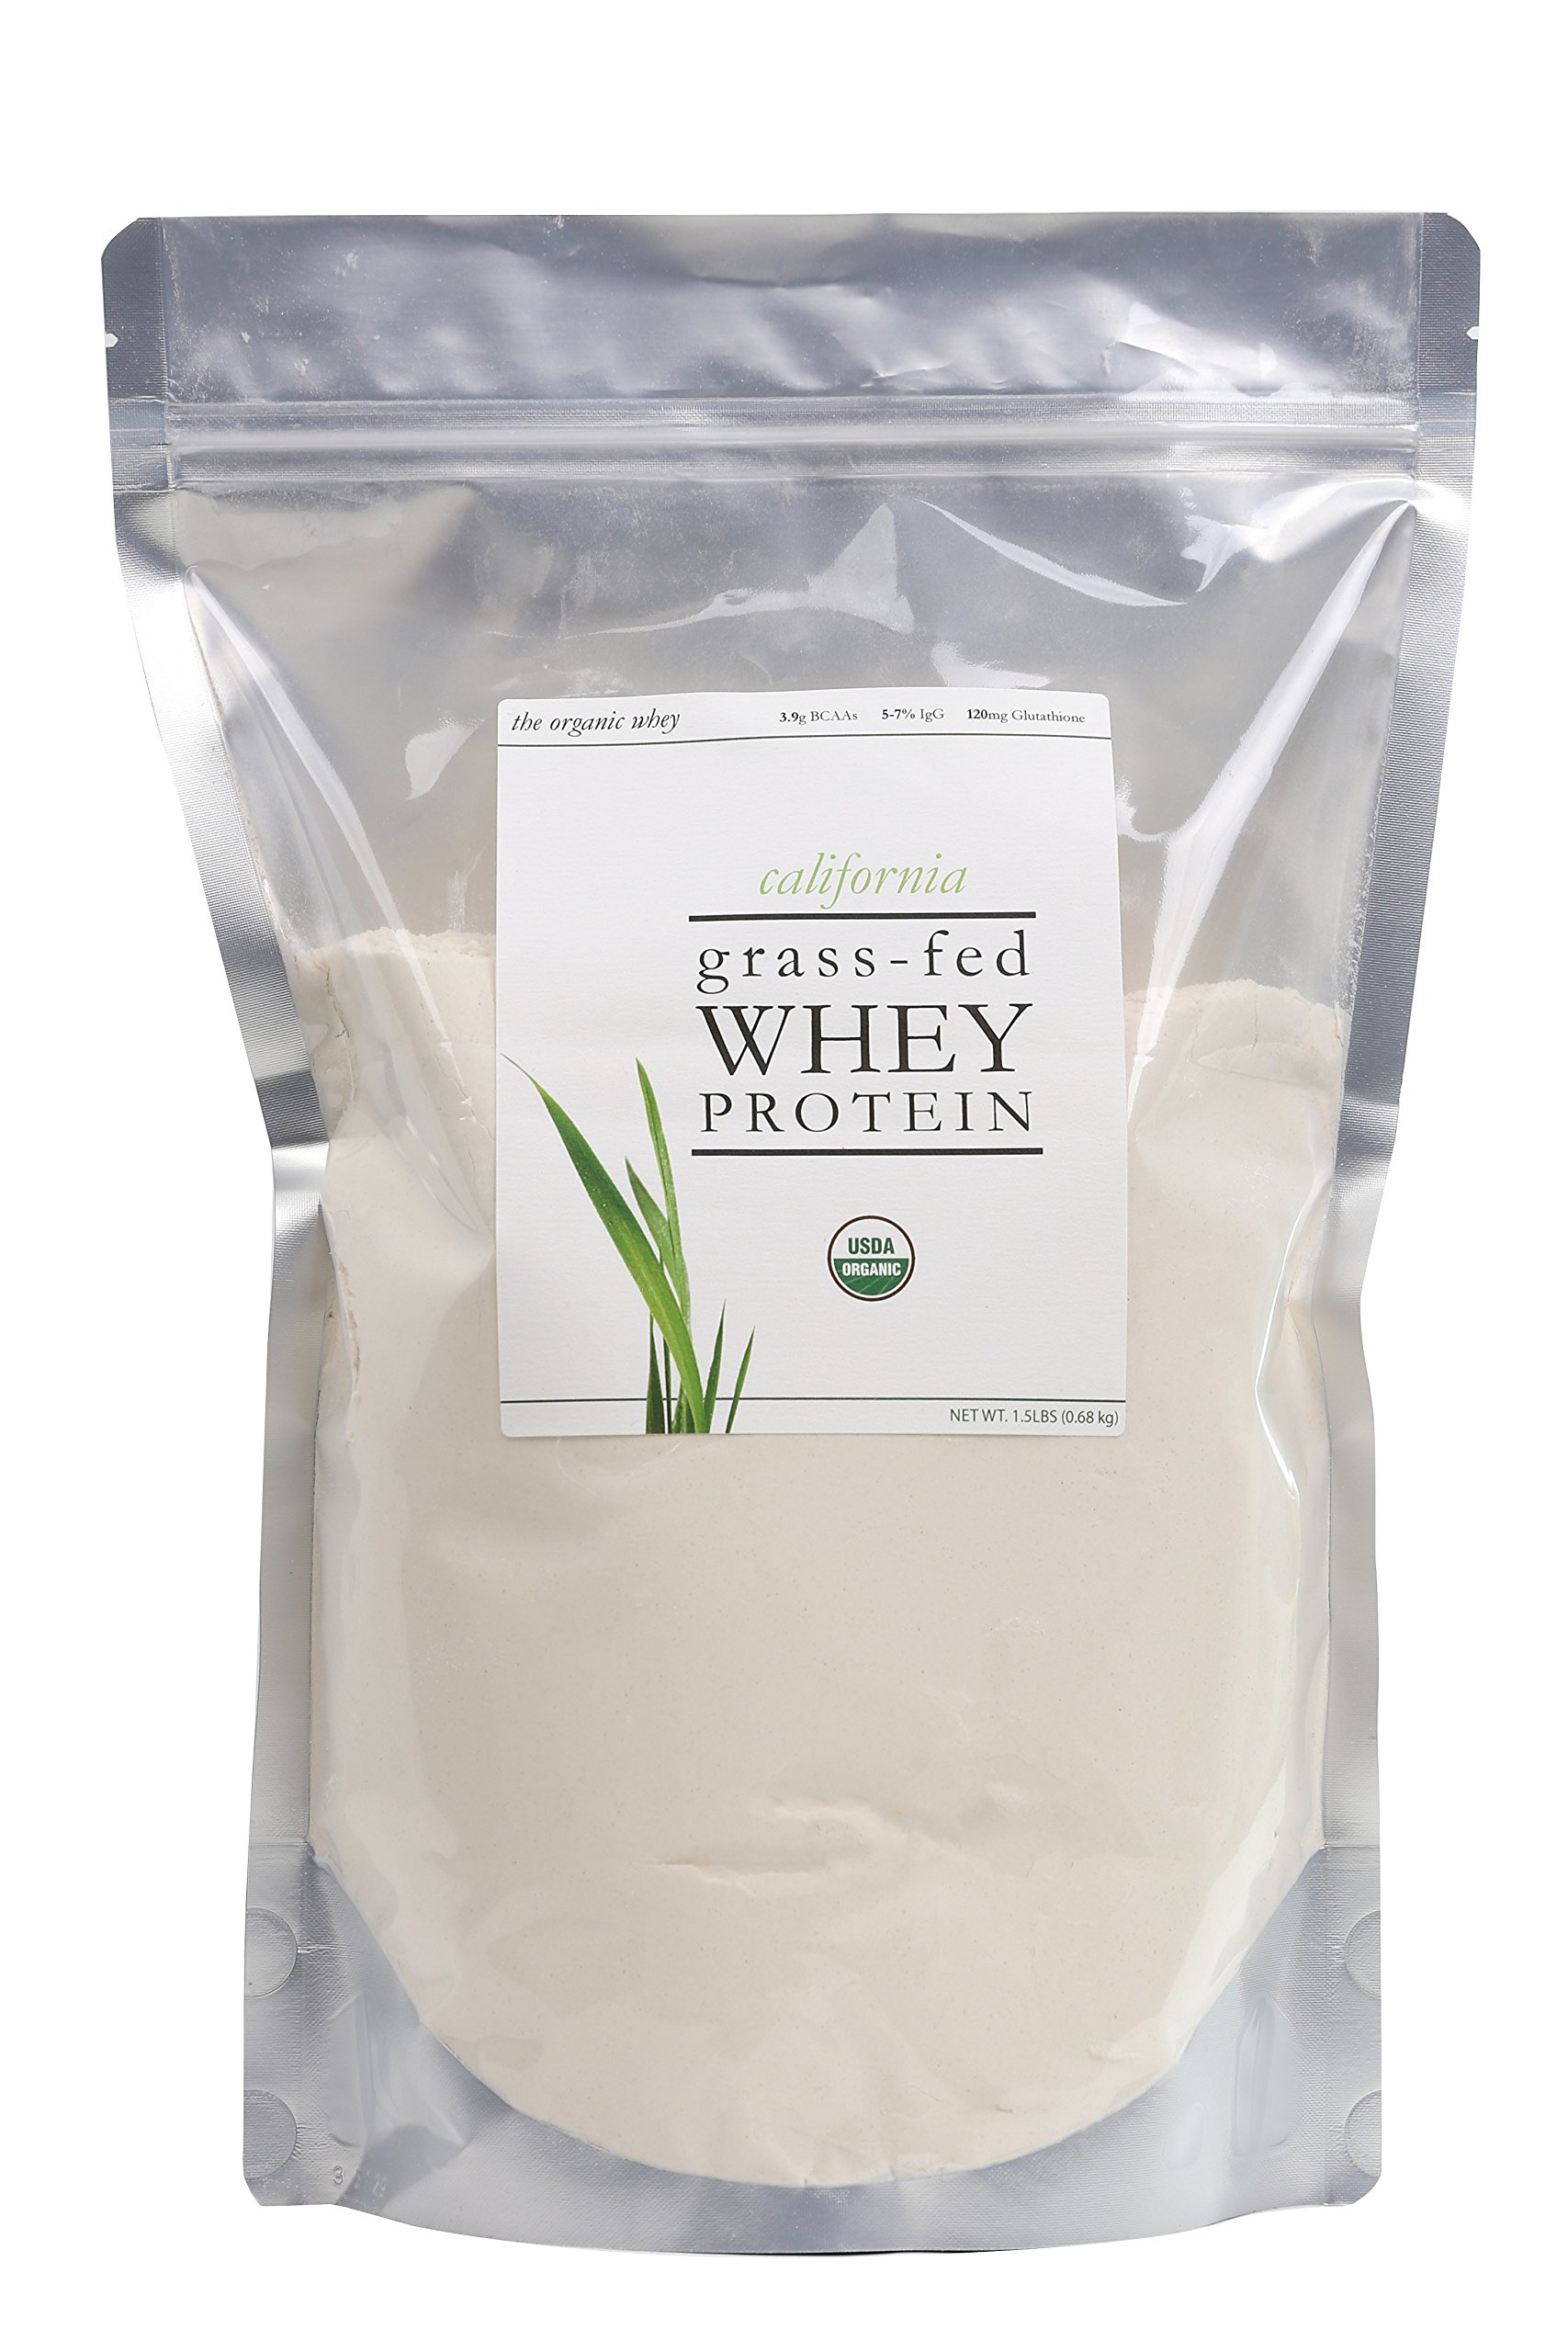 The Organic Whey Protein Powder - 100% Grass Fed Protein - Gluten-free, Non-GMO, USDA Certified Organic - Unflavored - Bulk Bag, 1.5 lbs by The Organic Whey